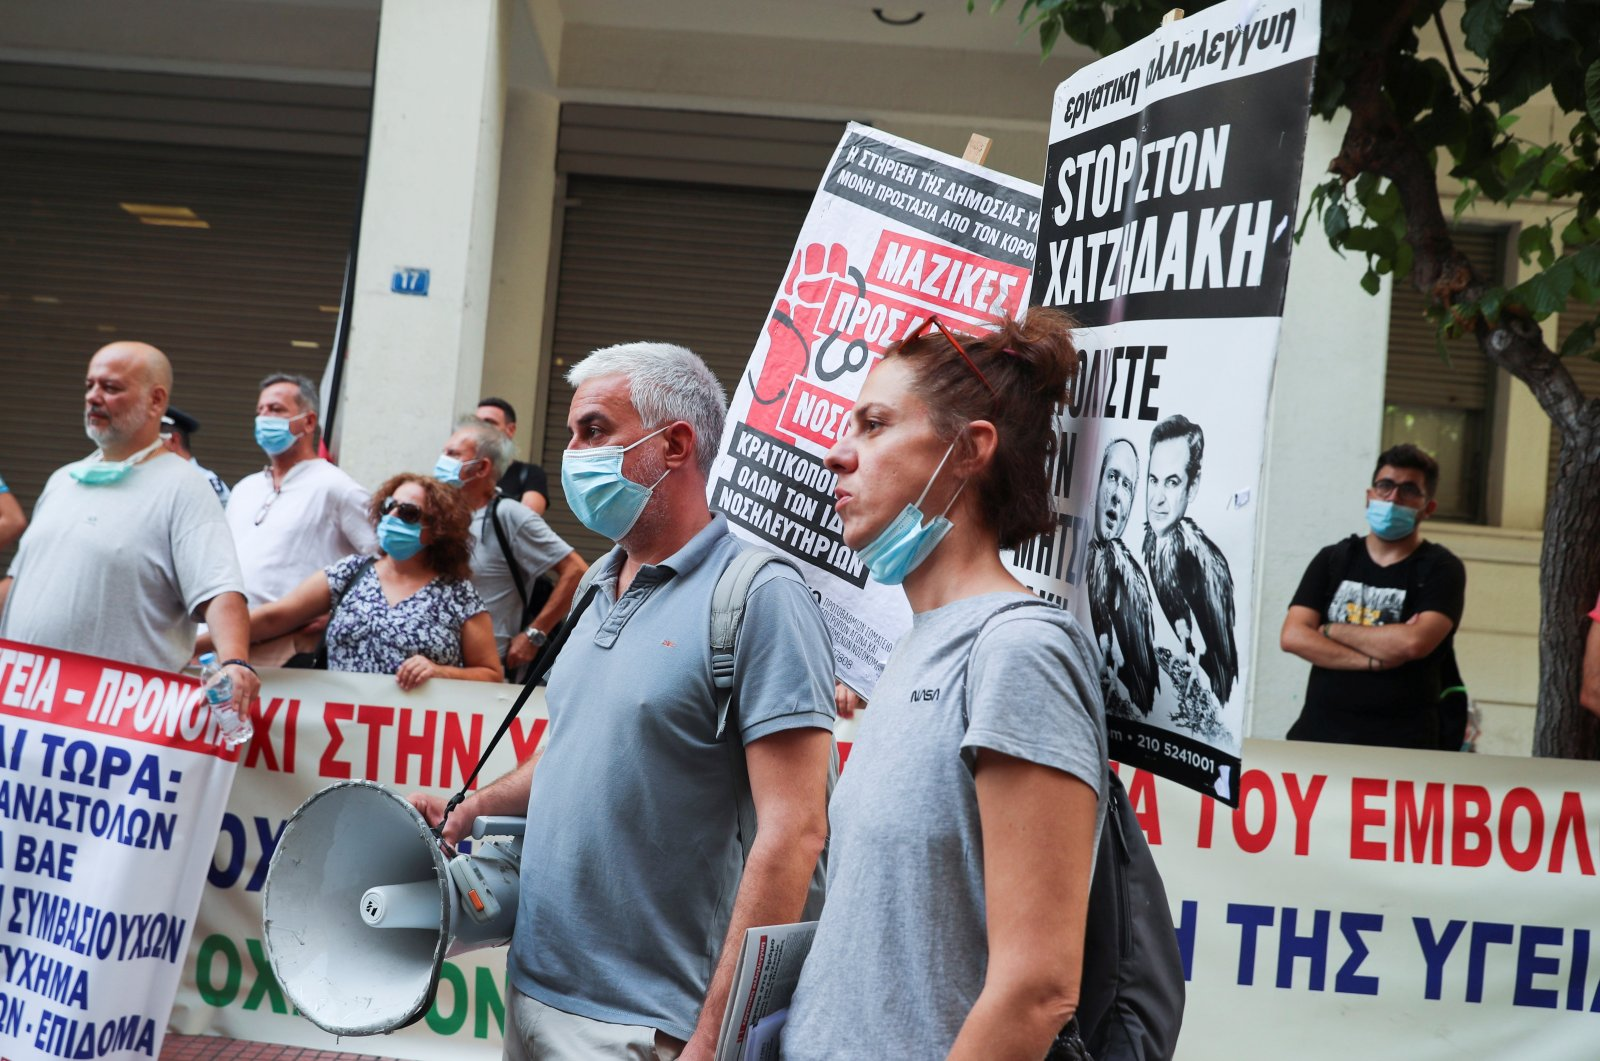 Medical workers take part in a protest over mandatory vaccinations and the indefinite suspension for those working in the health care sector that have not had at least one shot of the vaccine, outside the Health Ministry in Athens, Greece, Sept. 21, 2021. (Reuters Photo)